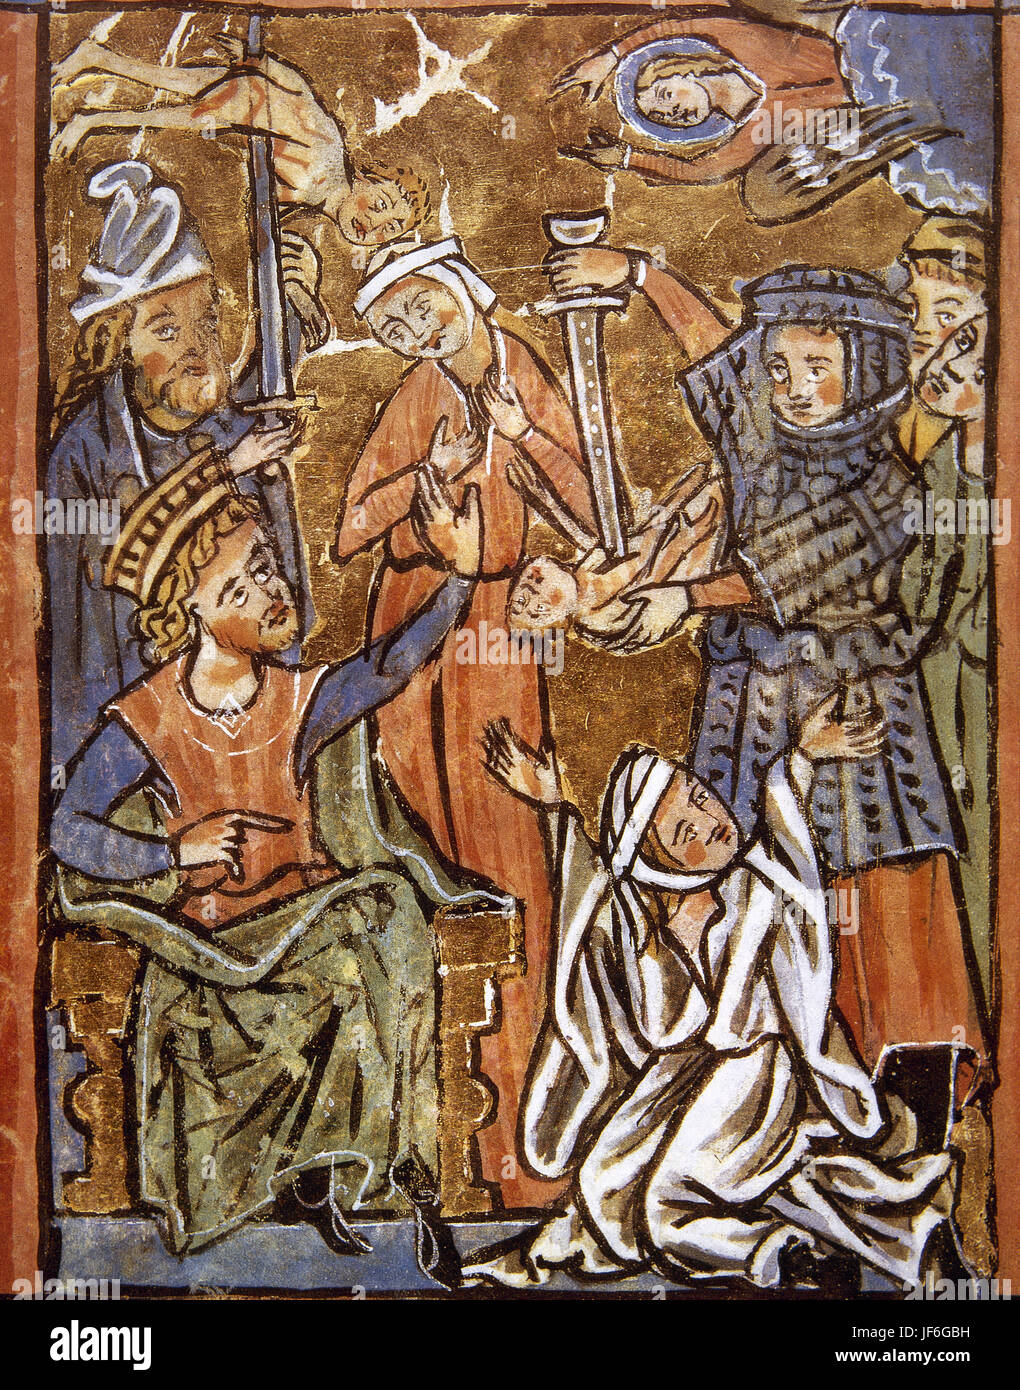 Massacre if the Innocents. Herod the Great sitiing in the throne. Miniature. Psalter, 15th century. - Stock Image